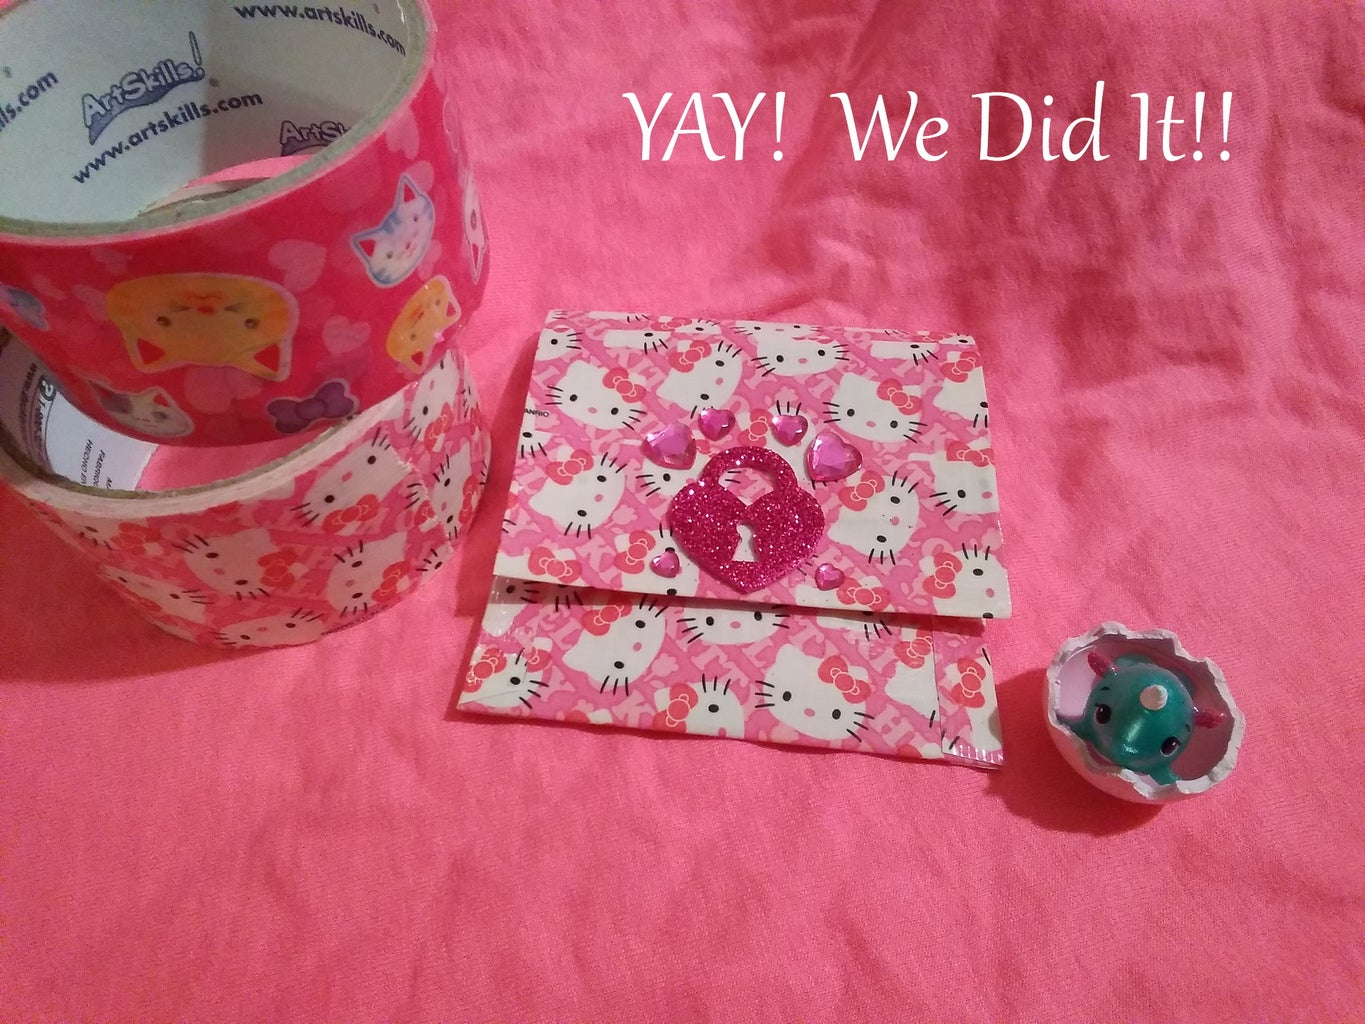 Decorating Your Duct Tape Ziploc Pouch